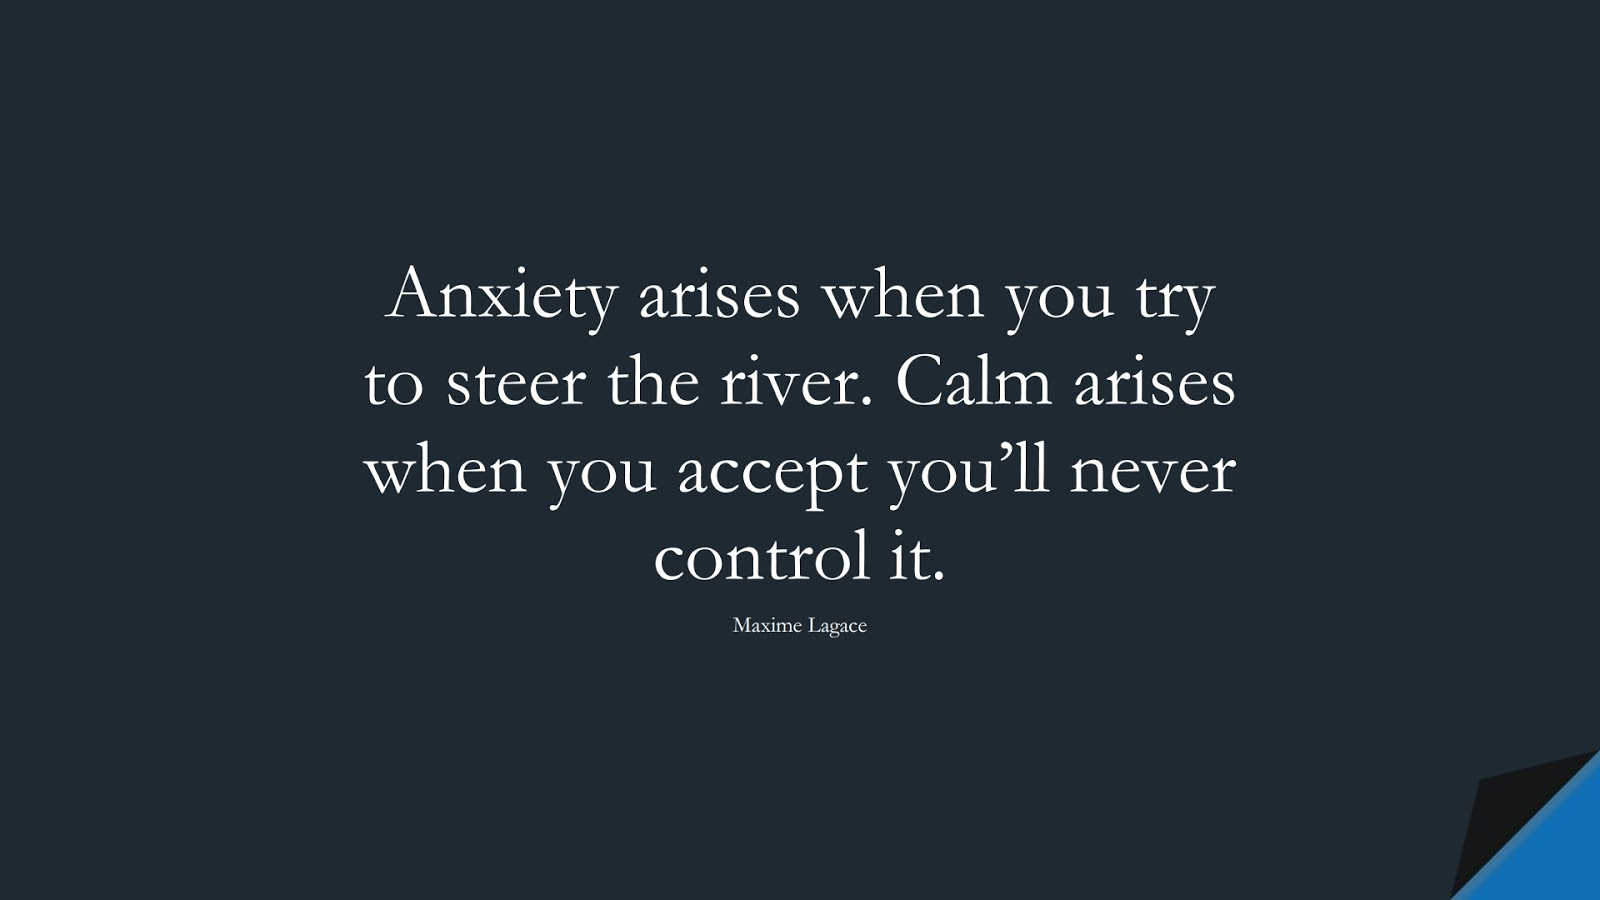 Anxiety arises when you try to steer the river. Calm arises when you accept you'll never control it. (Maxime Lagace);  #FearQuotes